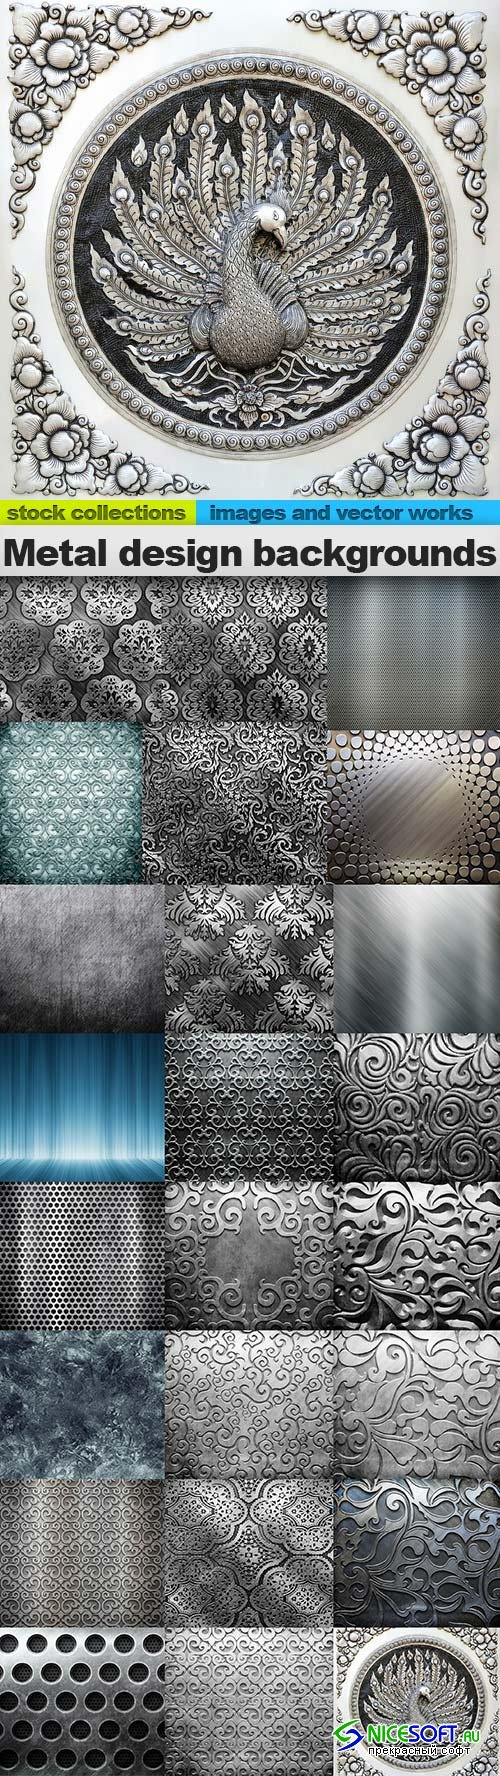 Metal design backgrounds, 24 x UHQ JPEG